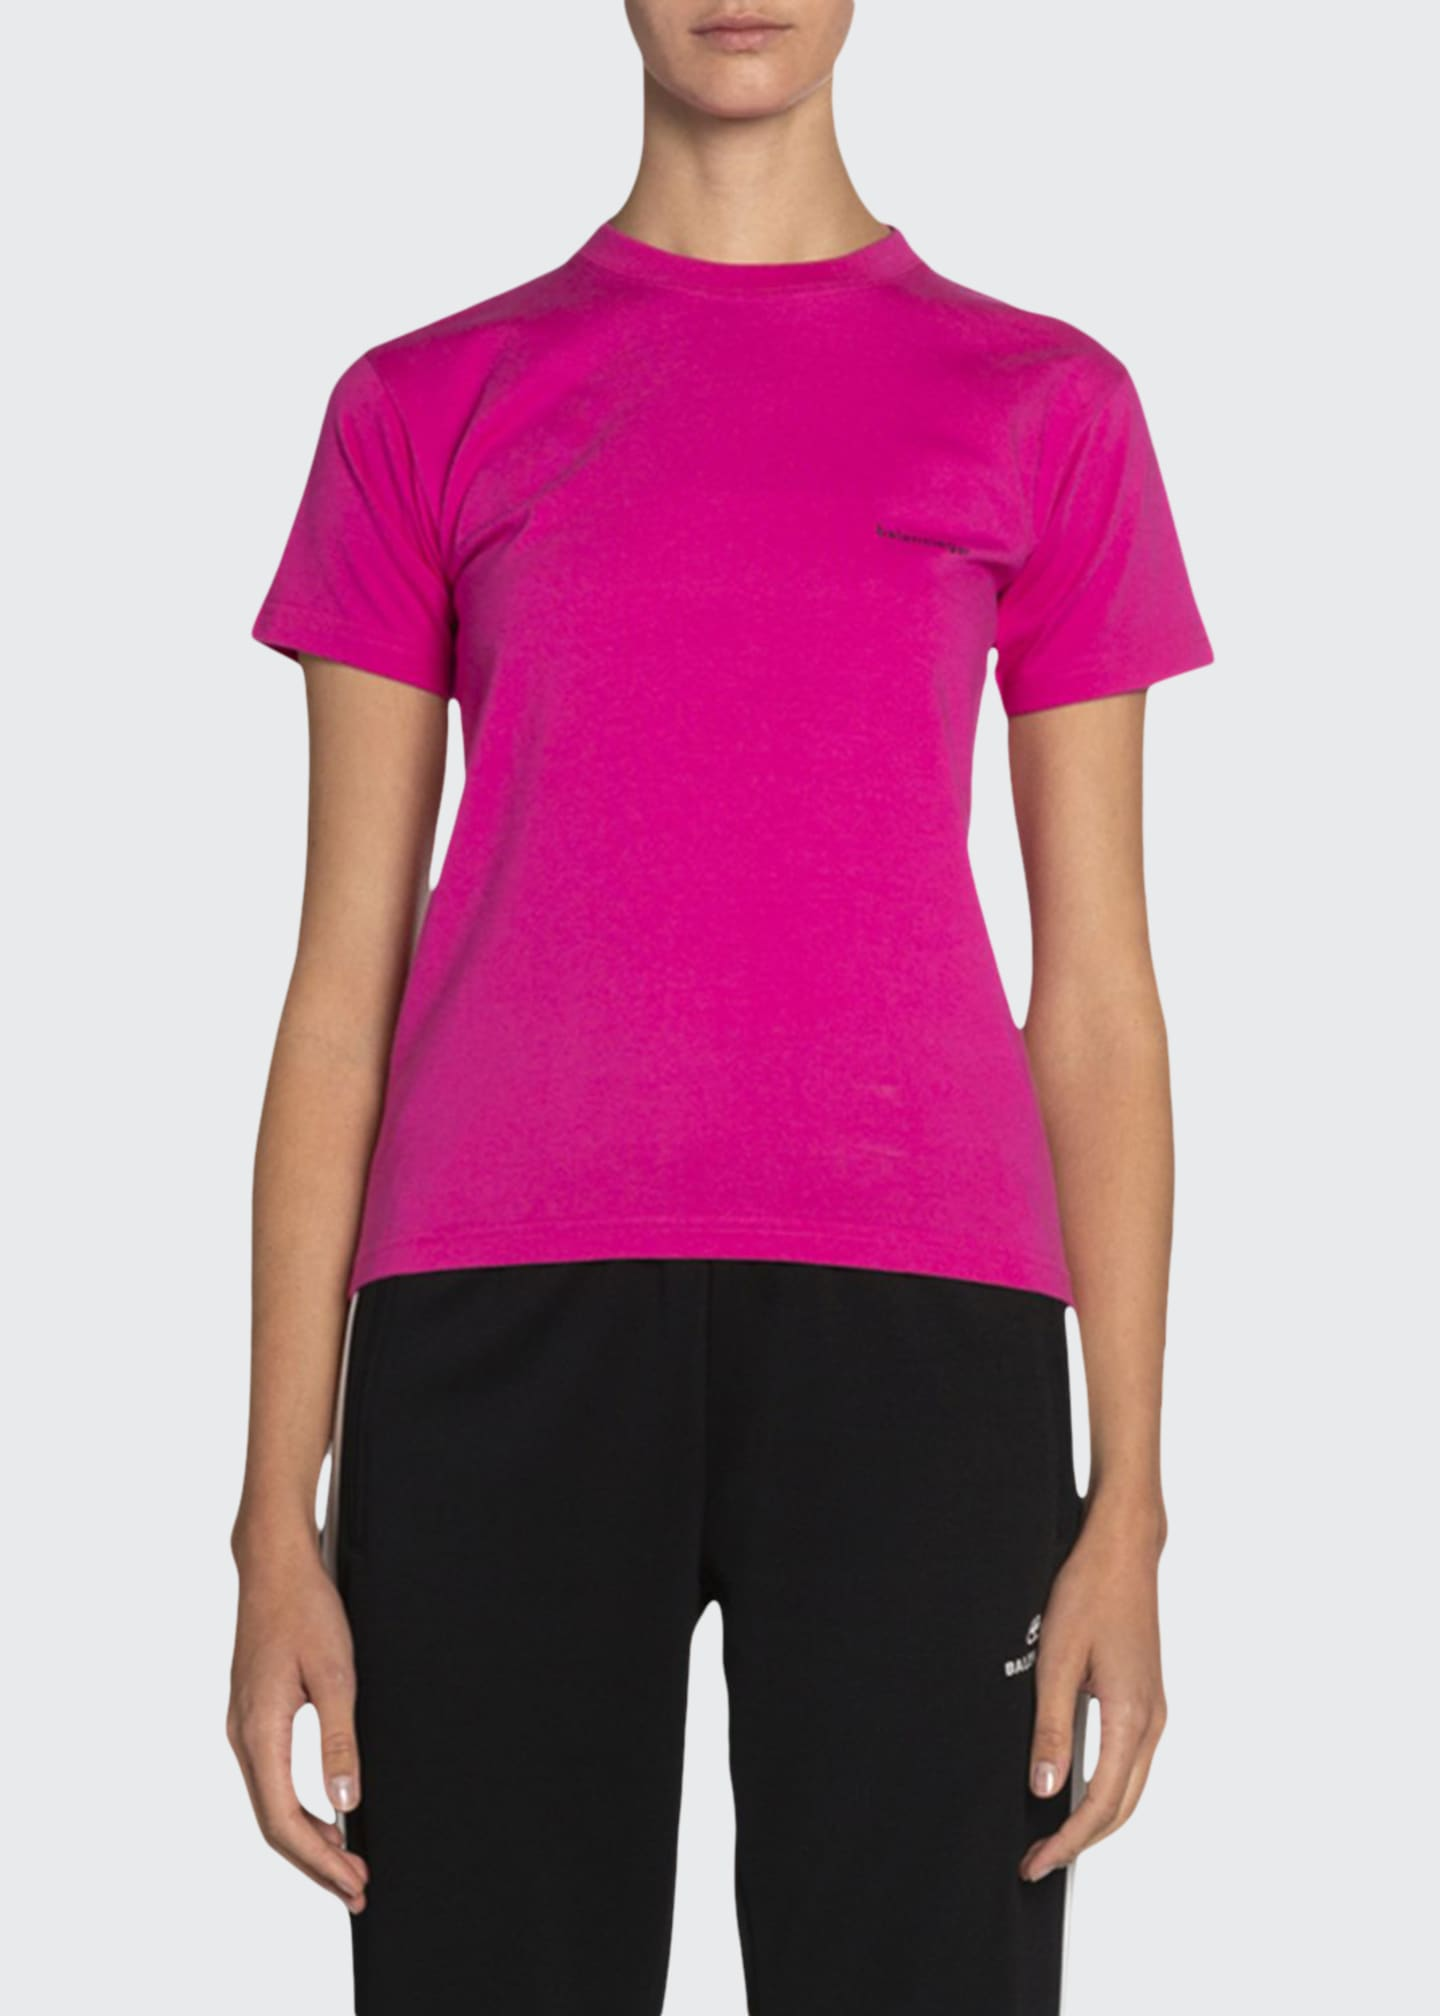 Balenciaga Copyright Fitted Jersey Tee, Pink